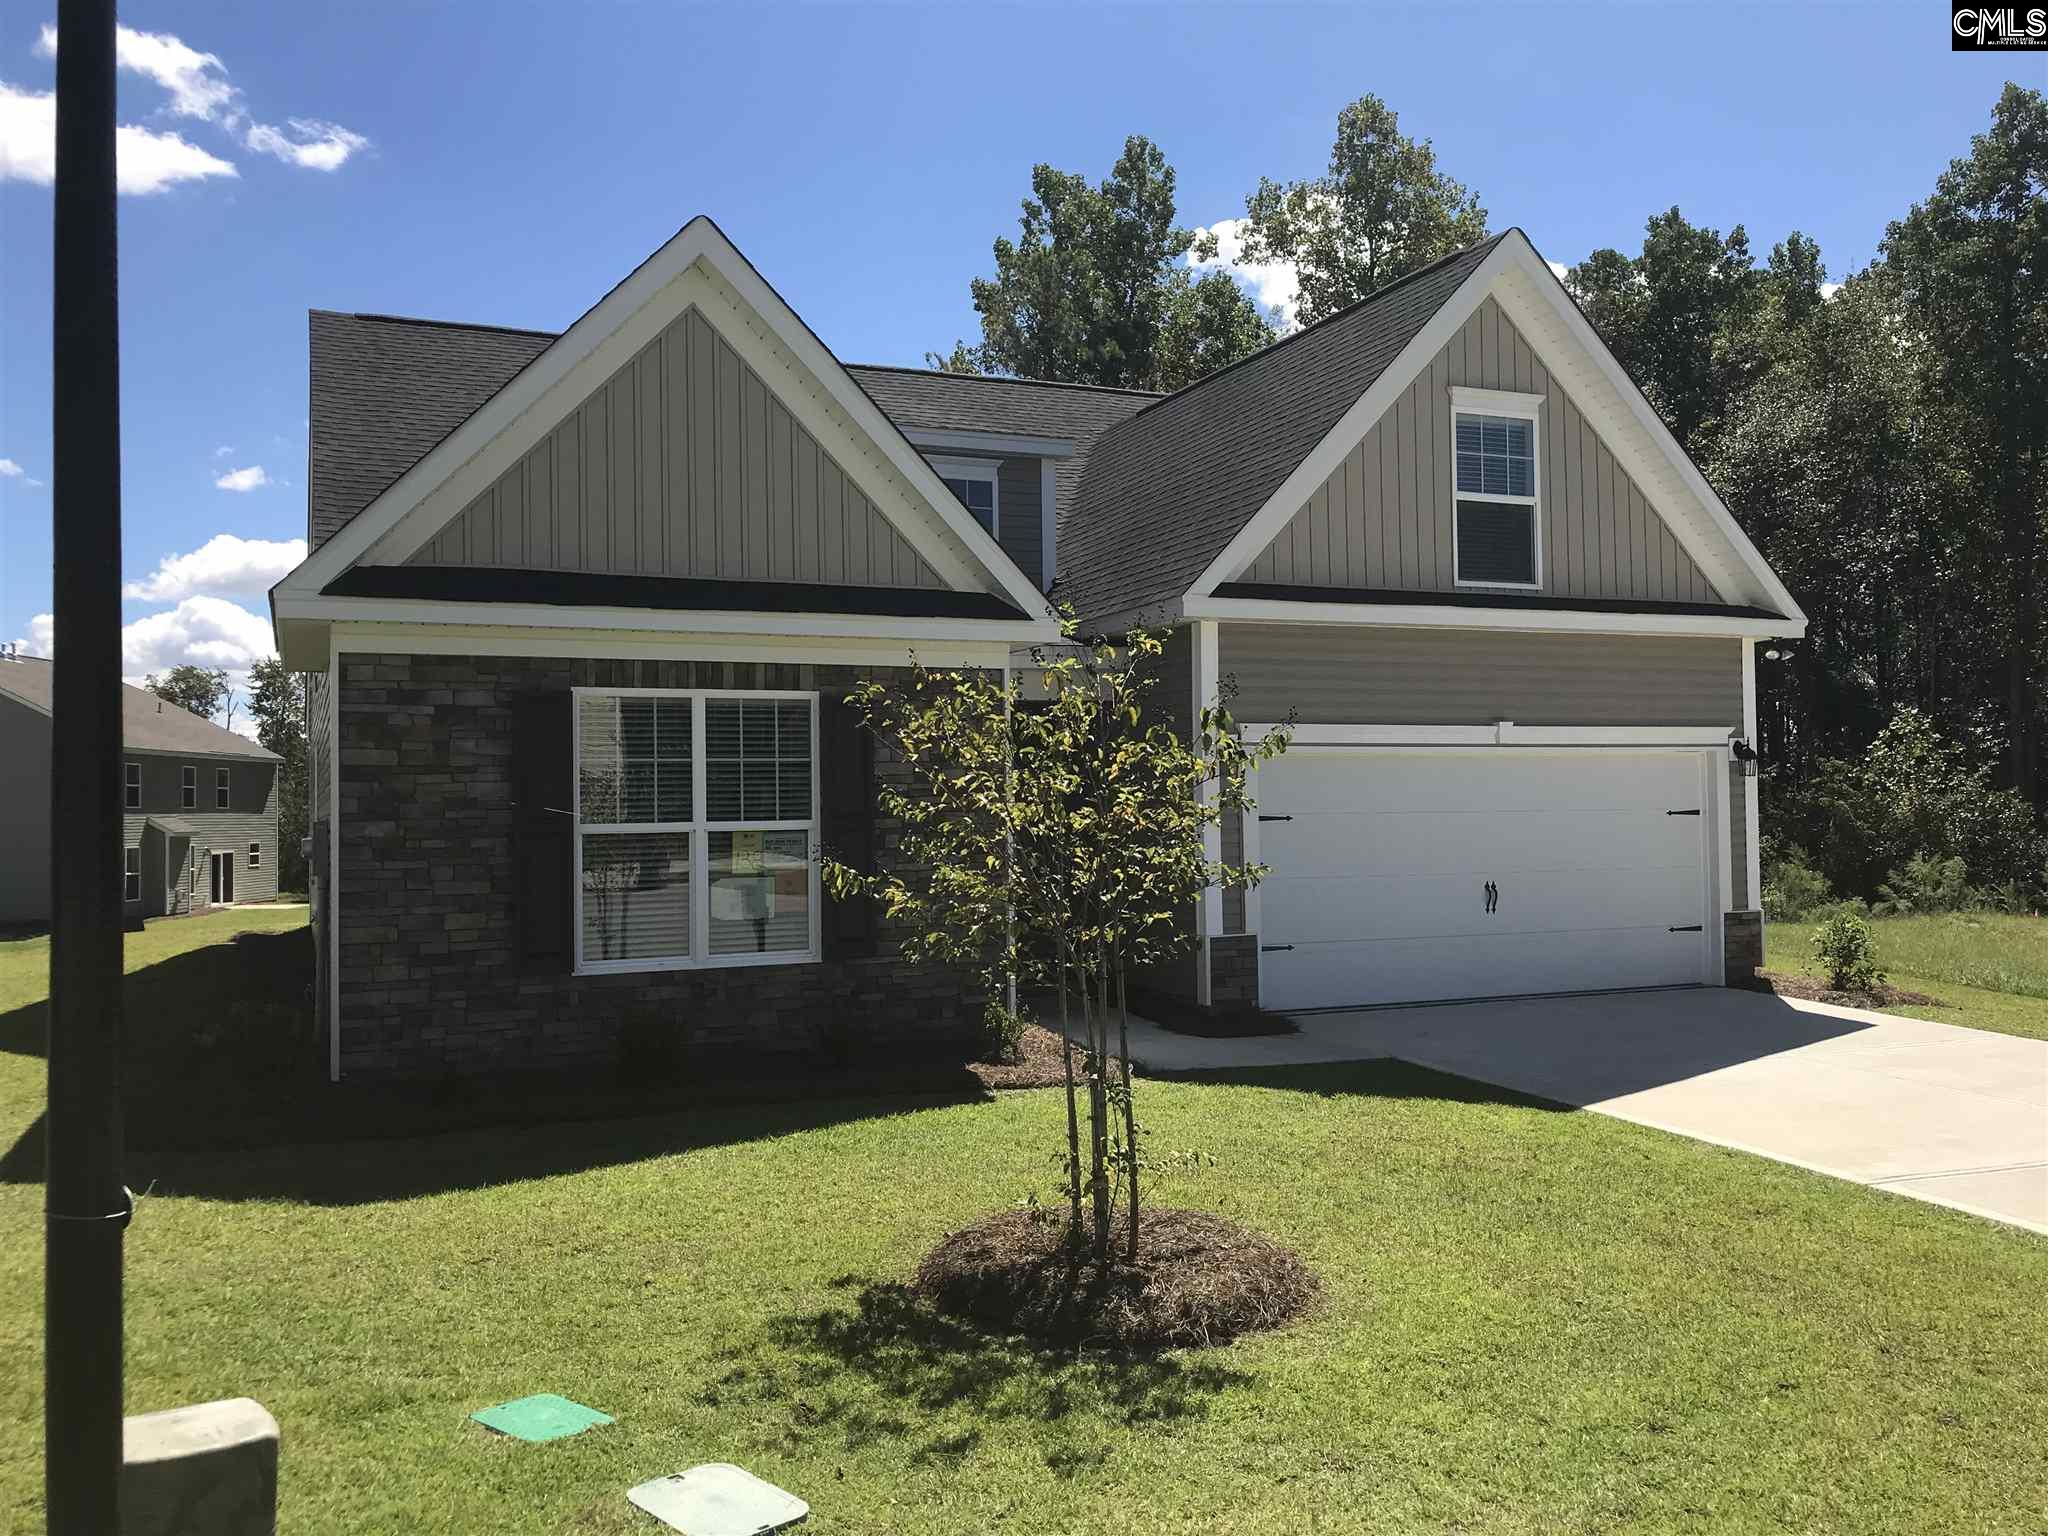 615 Dixie River #138 Lexington, SC 29073